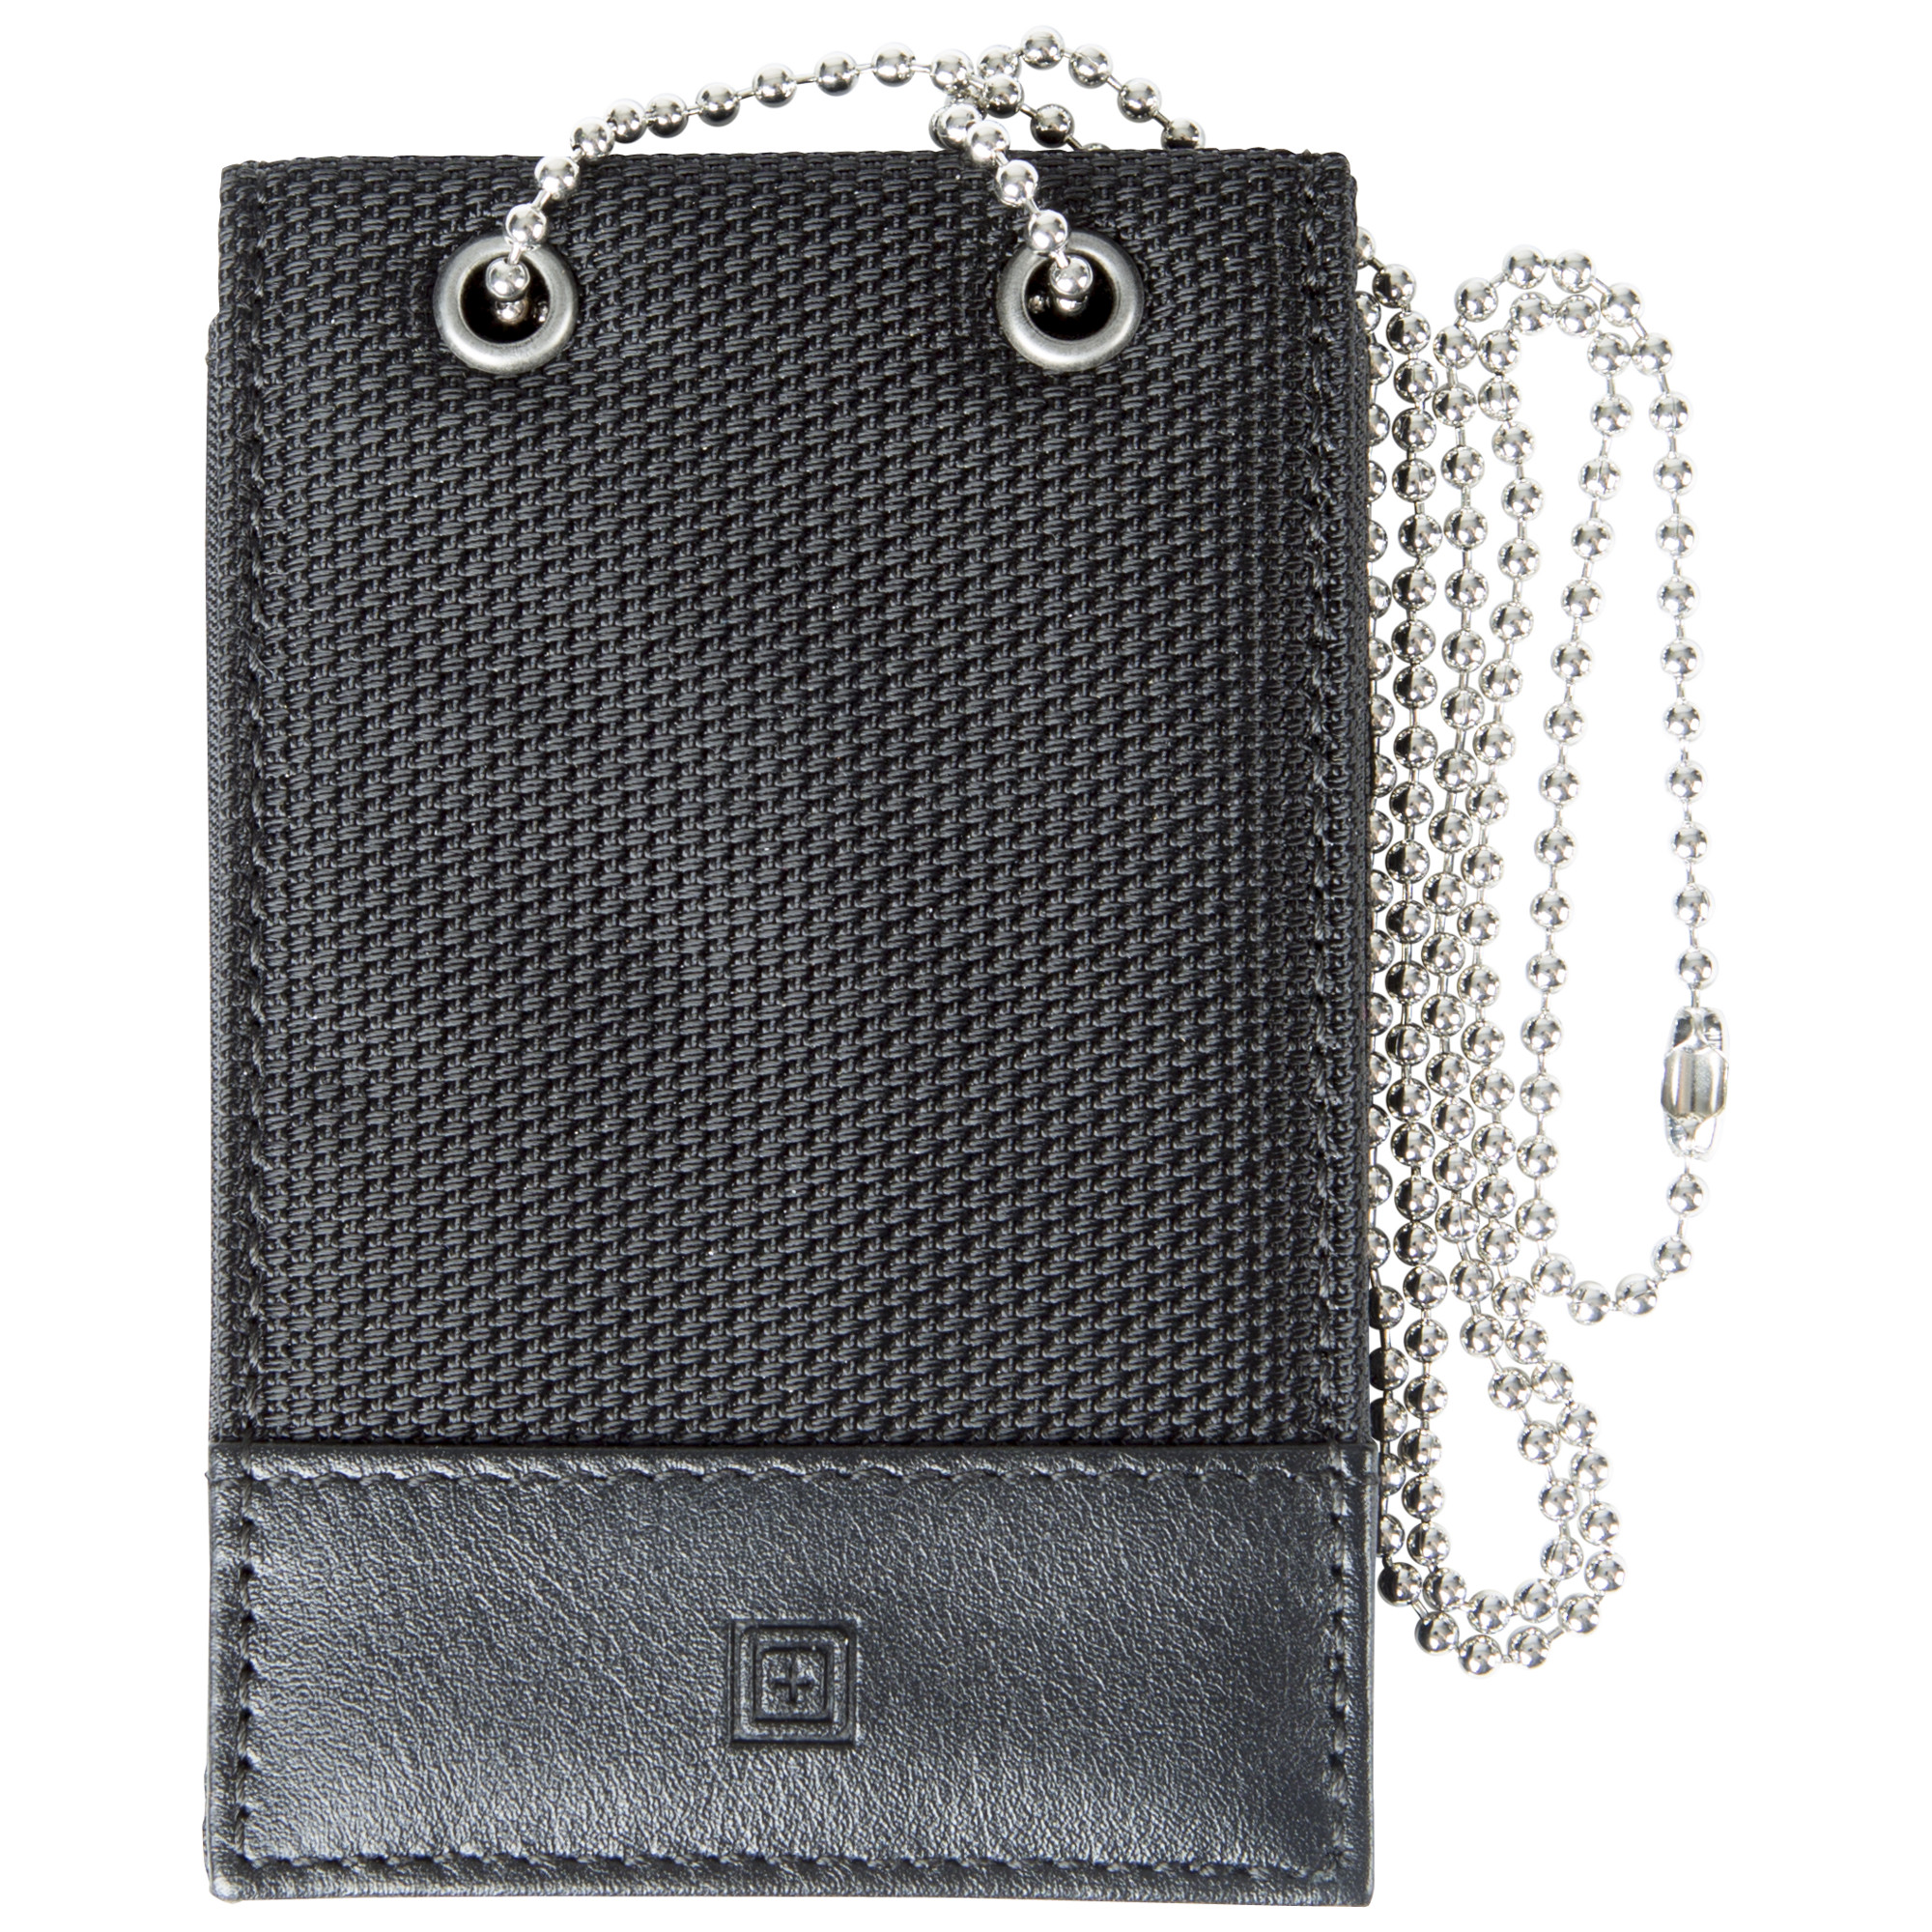 5.11 S.A.F.E.™ 3.4 Badge Wallet from 5.11 Tactical (Black)